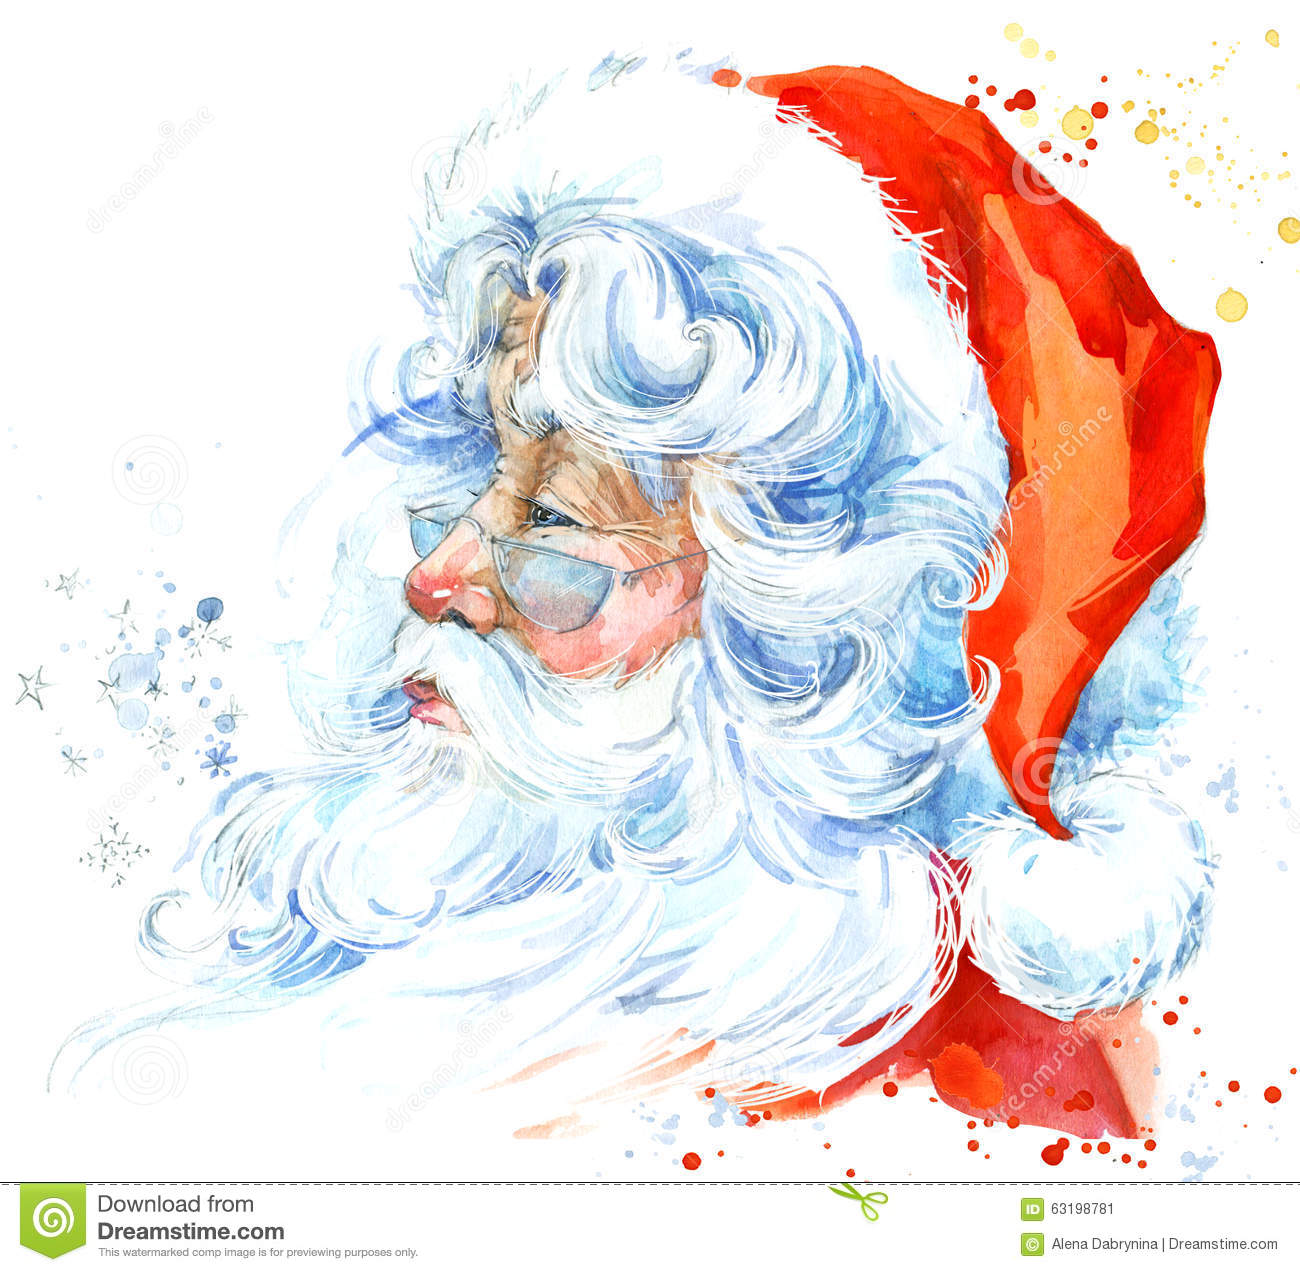 Watercolor santa claus santa claus christmas background new year watercolor santa claus santa claus christmas background new year background jeuxipadfo Choice Image